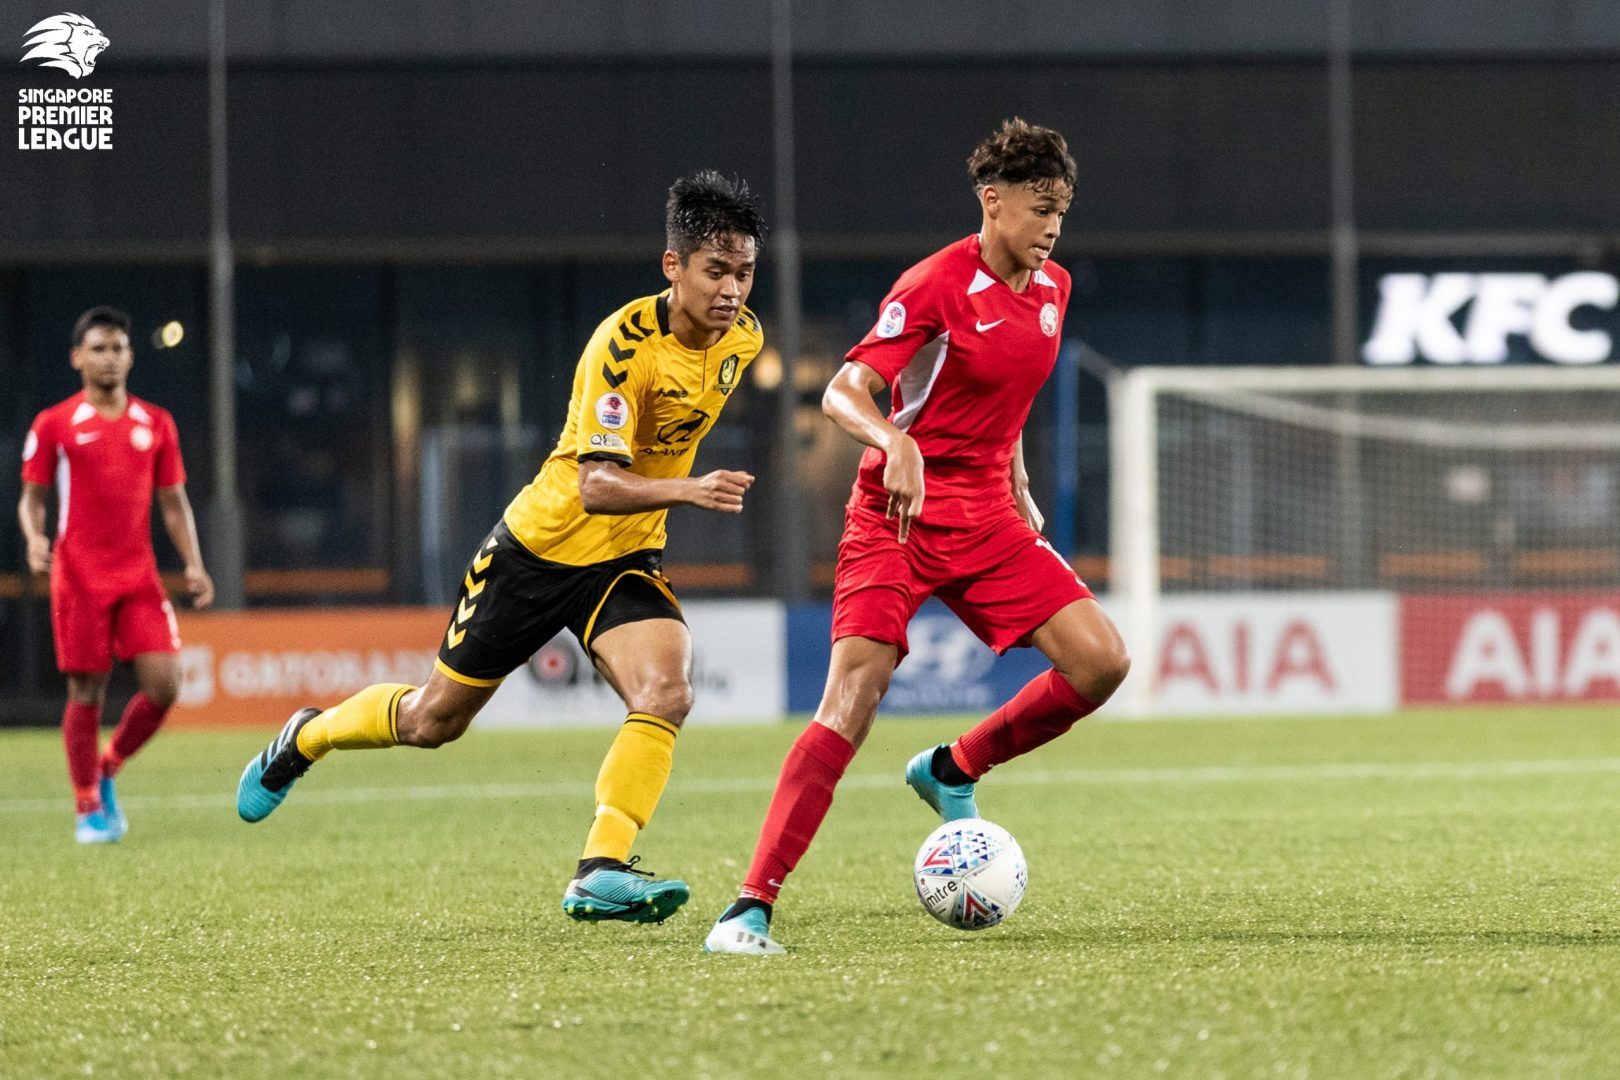 All SPL matches to be broadcast 'live' on television, have real-time statistics in historic deals - Football Association of Singapore